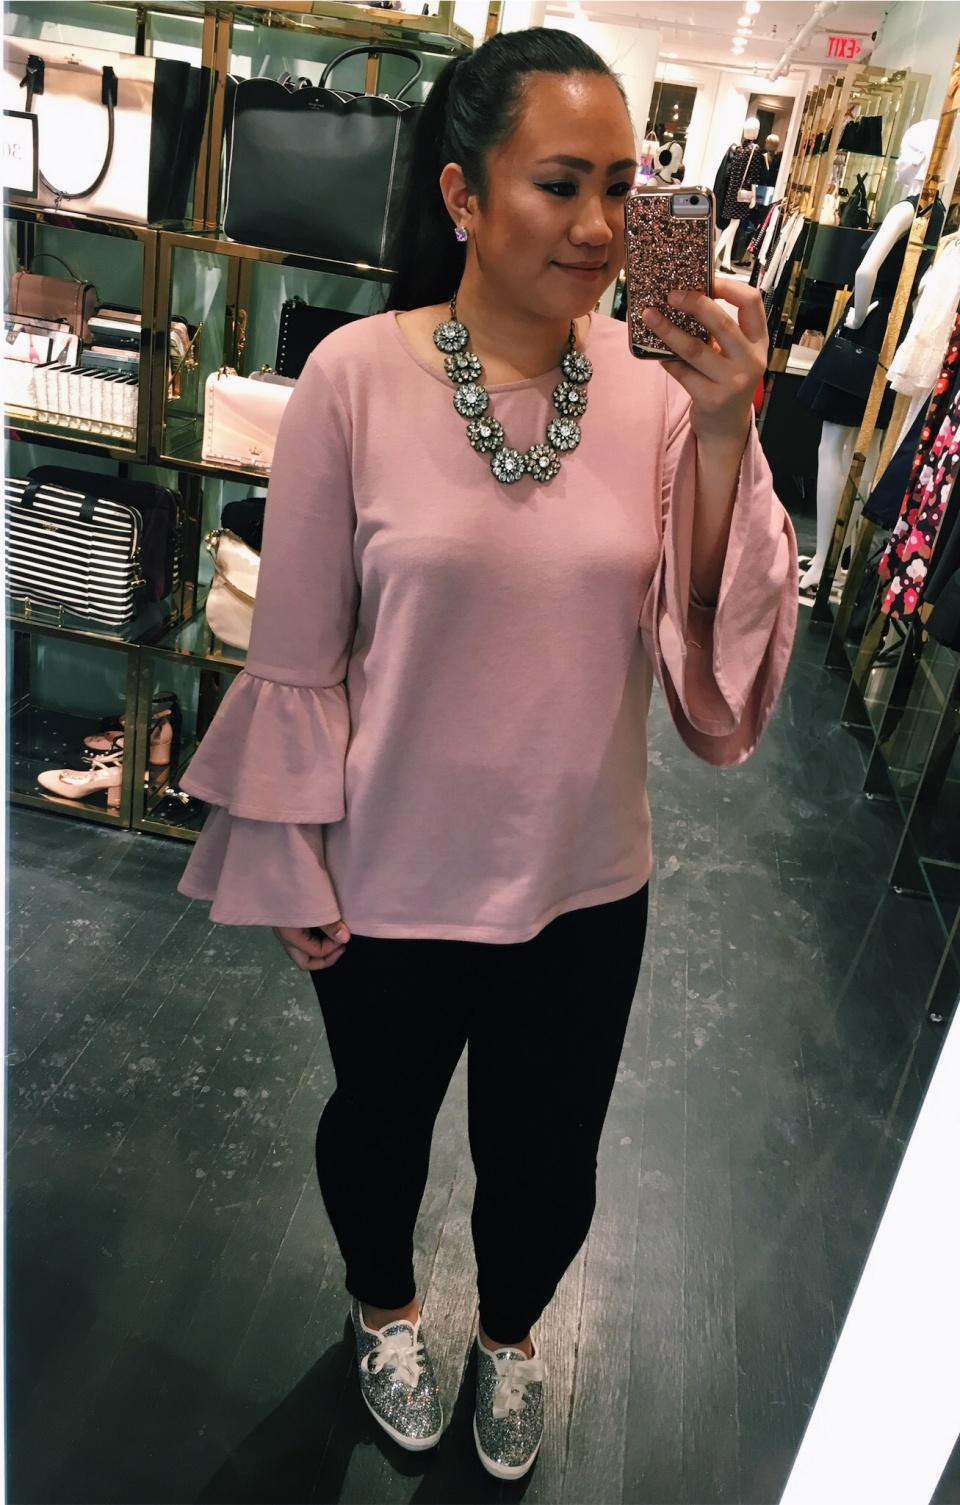 ALL IN THE SLEEVE - Obsessed as of 2018-Statement sleeve tops that are similar to mine are posted down below! Could not find the exact links to each top- but there are some great deals on them right now! I love these tops because they add a nice flair to any plain top!